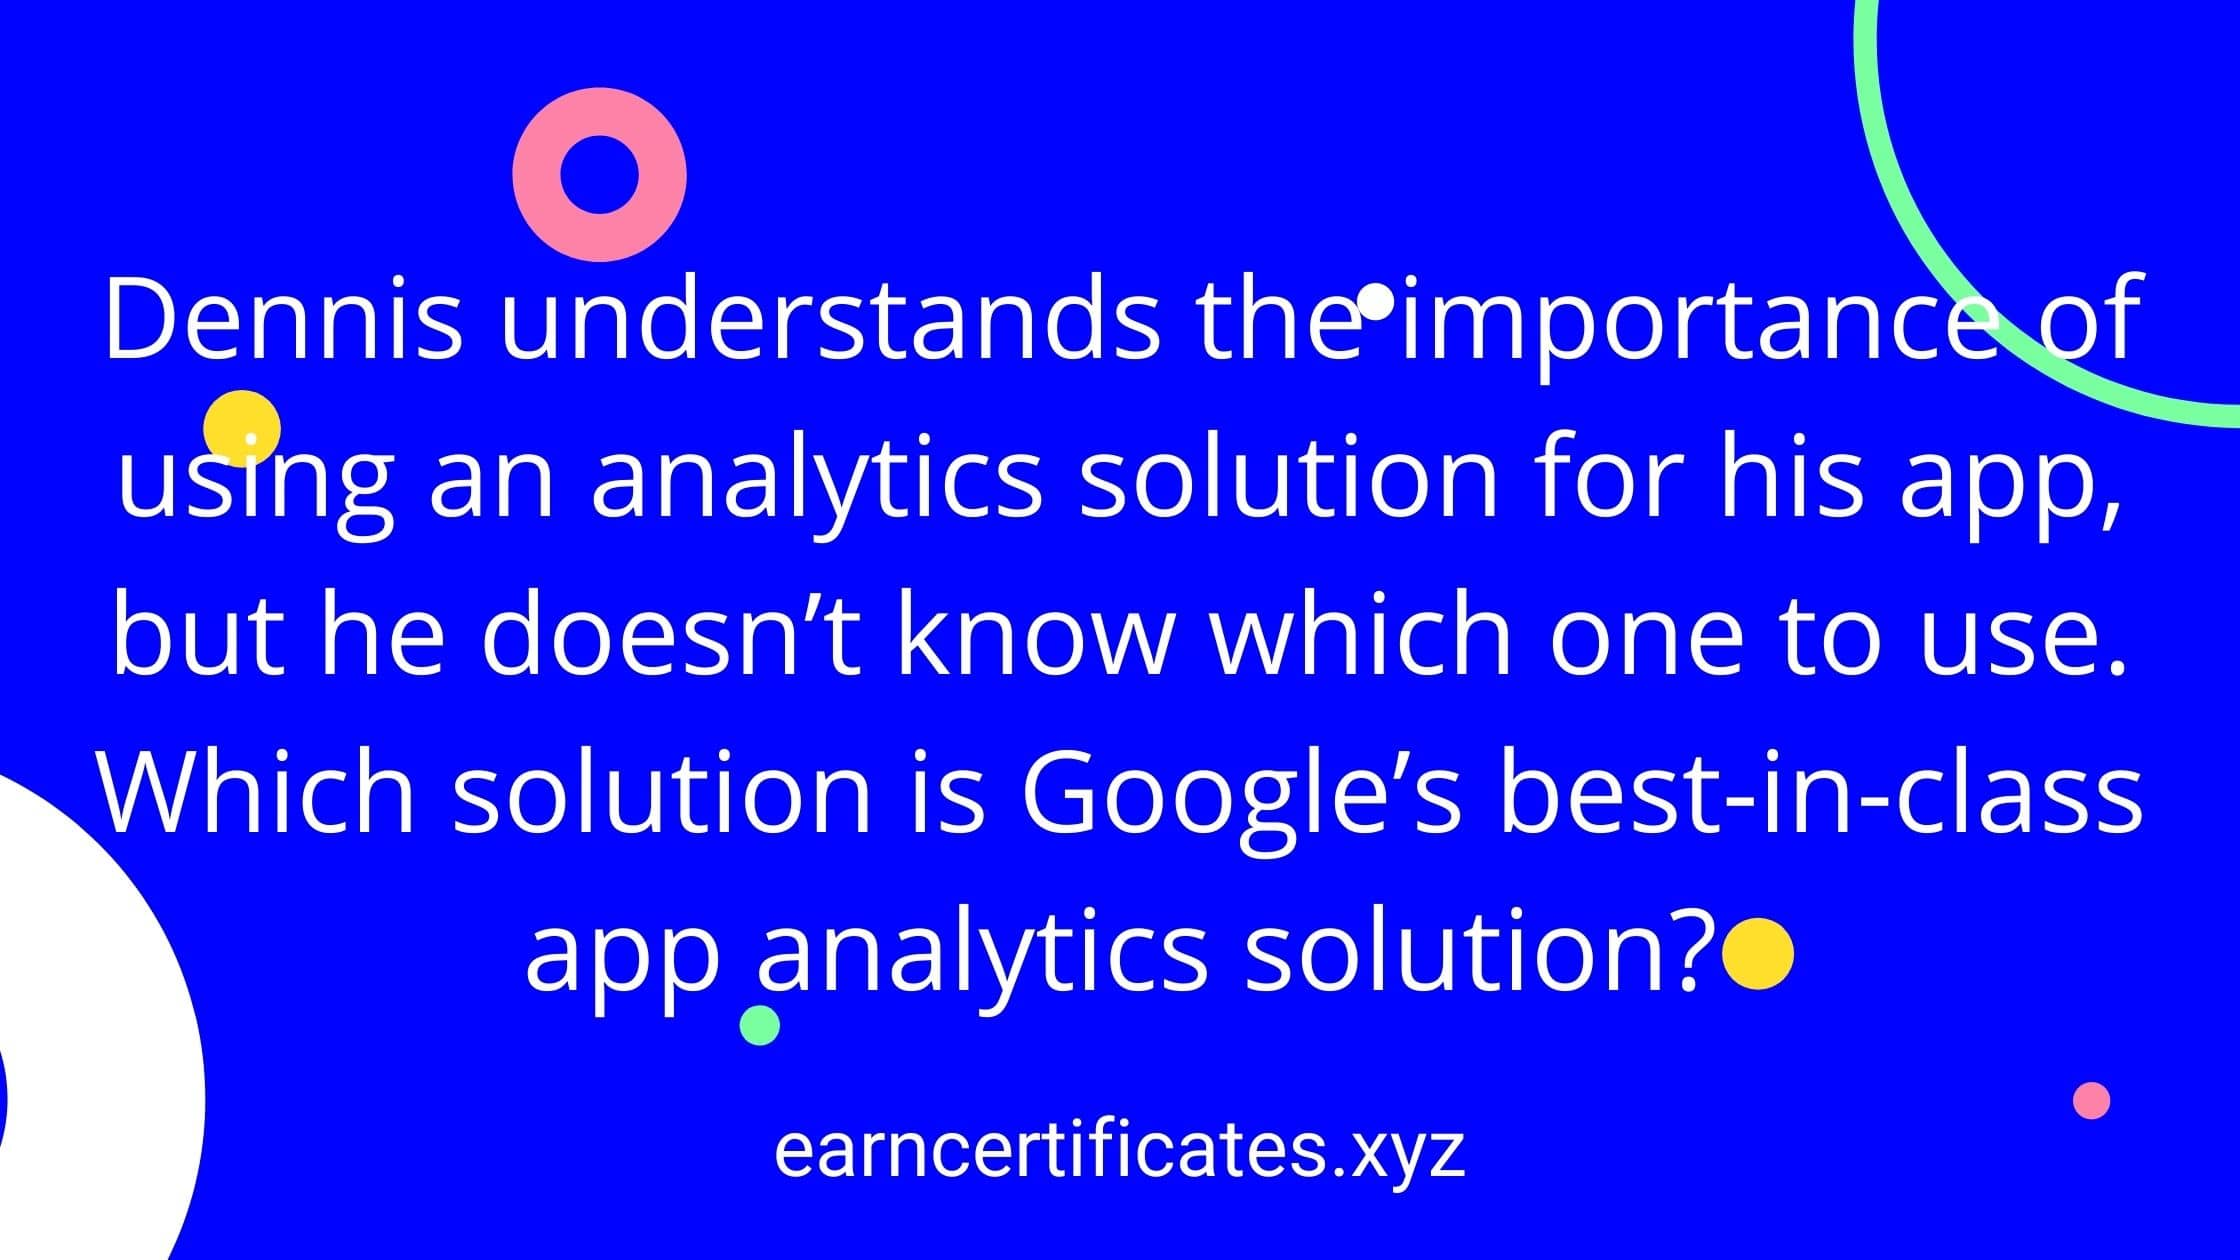 Dennis understands the importance of using an analytics solution for his app, but he doesn't know which one to use. Which solution is Google's best-in-class app analytics solution?